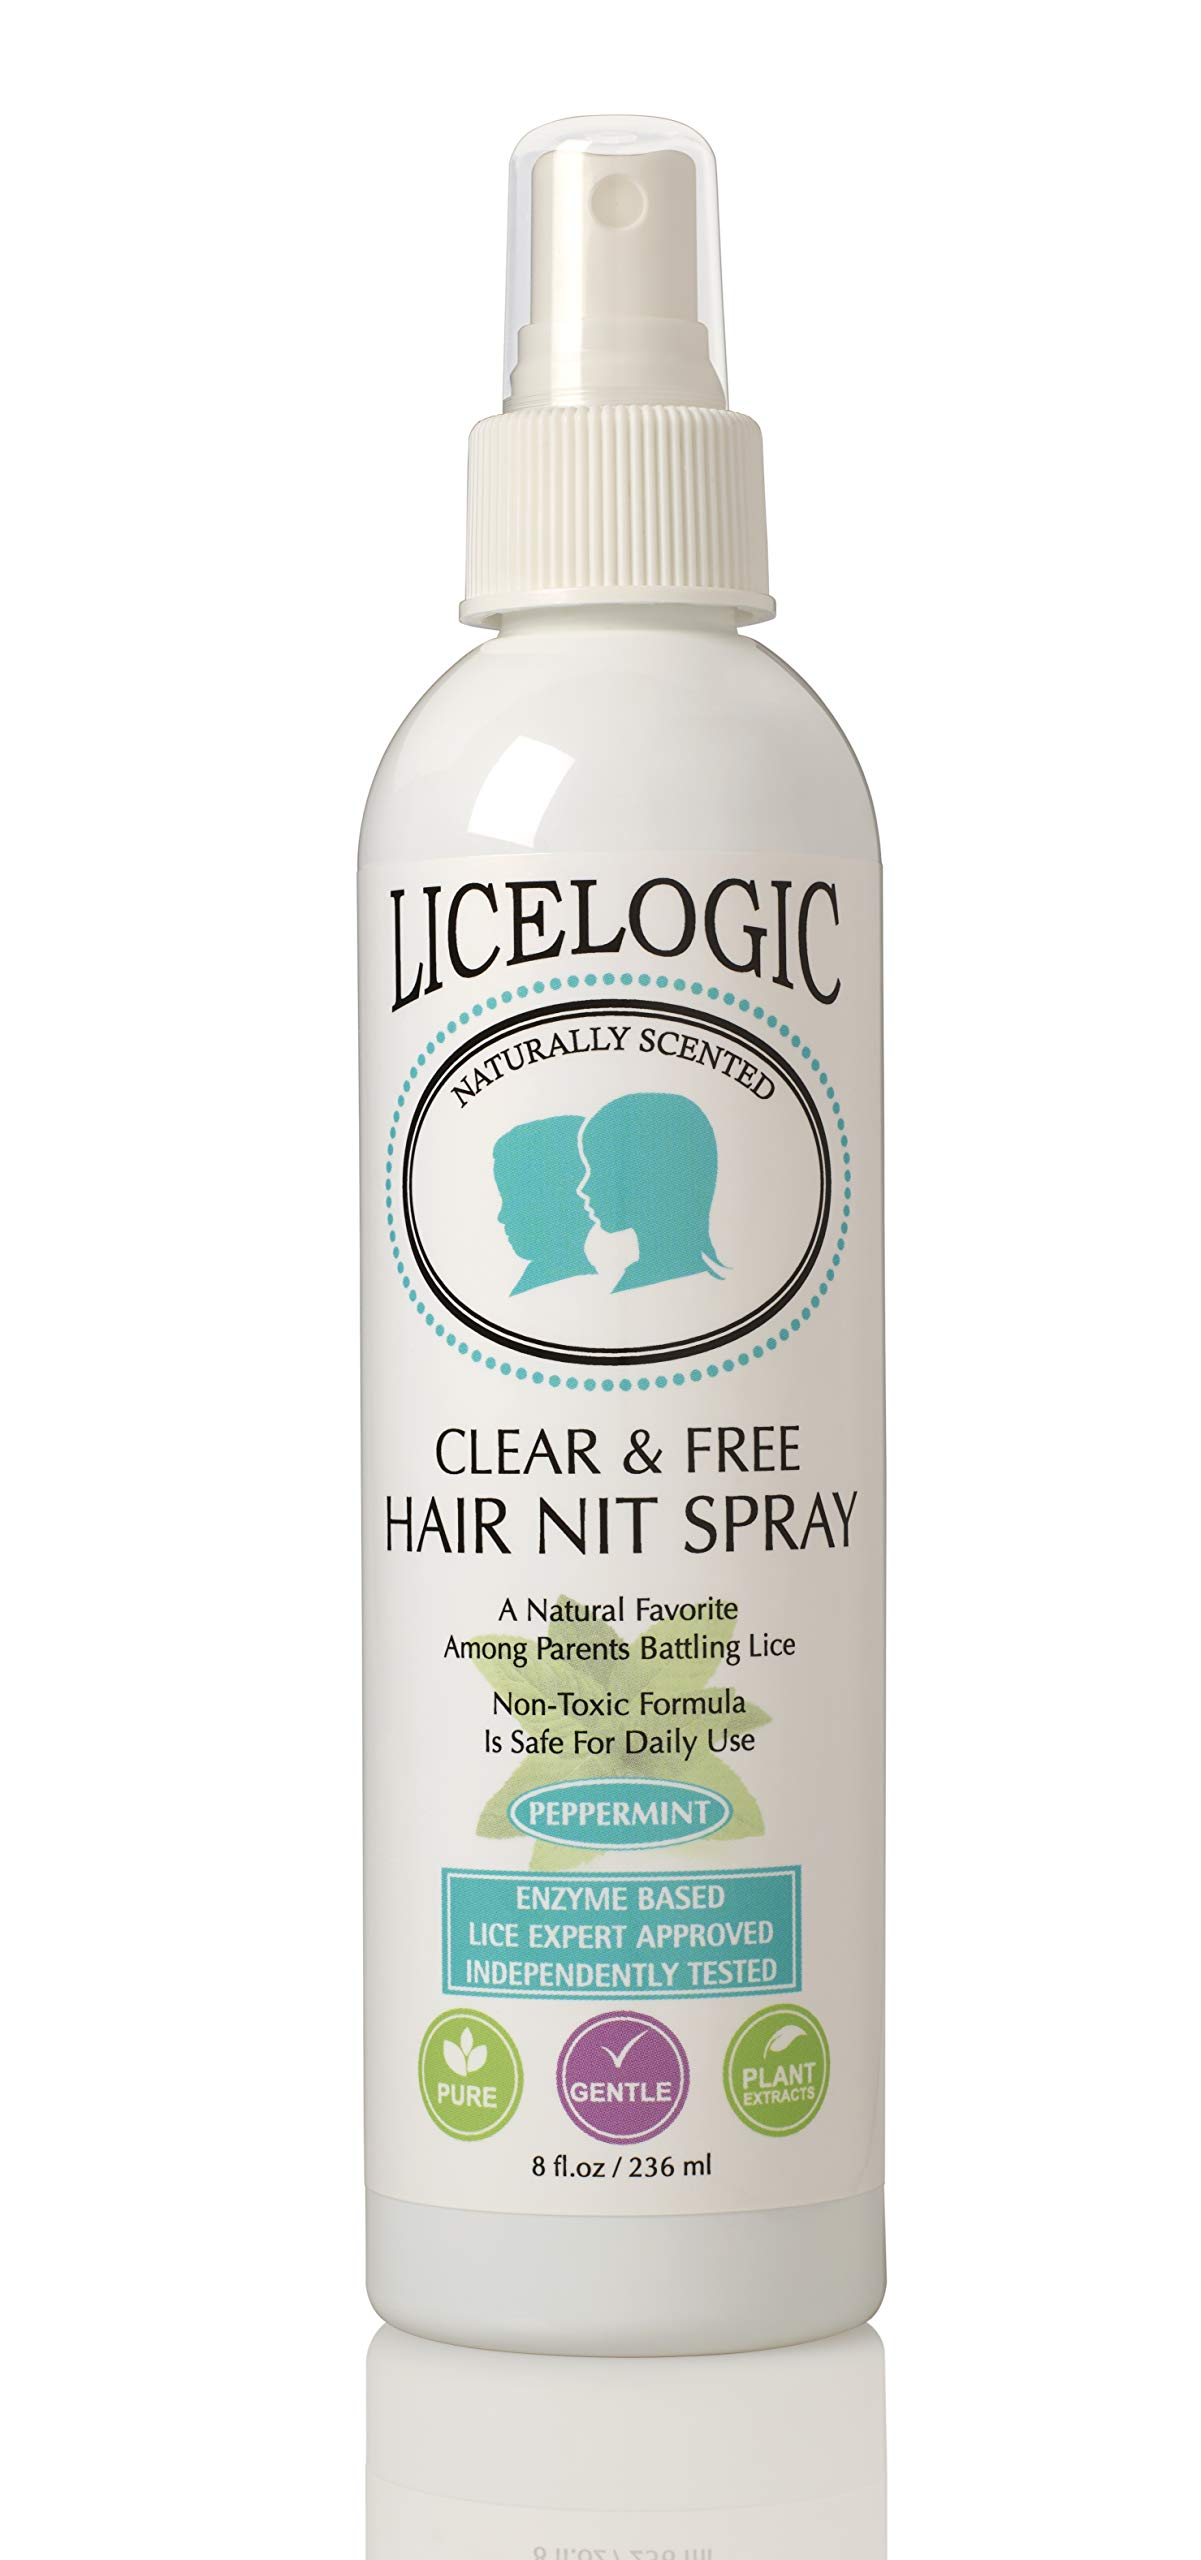 Lice Treatment Hair Spray to Kill Lice and Nits - Non-Toxic Formula Safe For Daily Use with No Harsh Chemicals, 8 oz by Logic Products